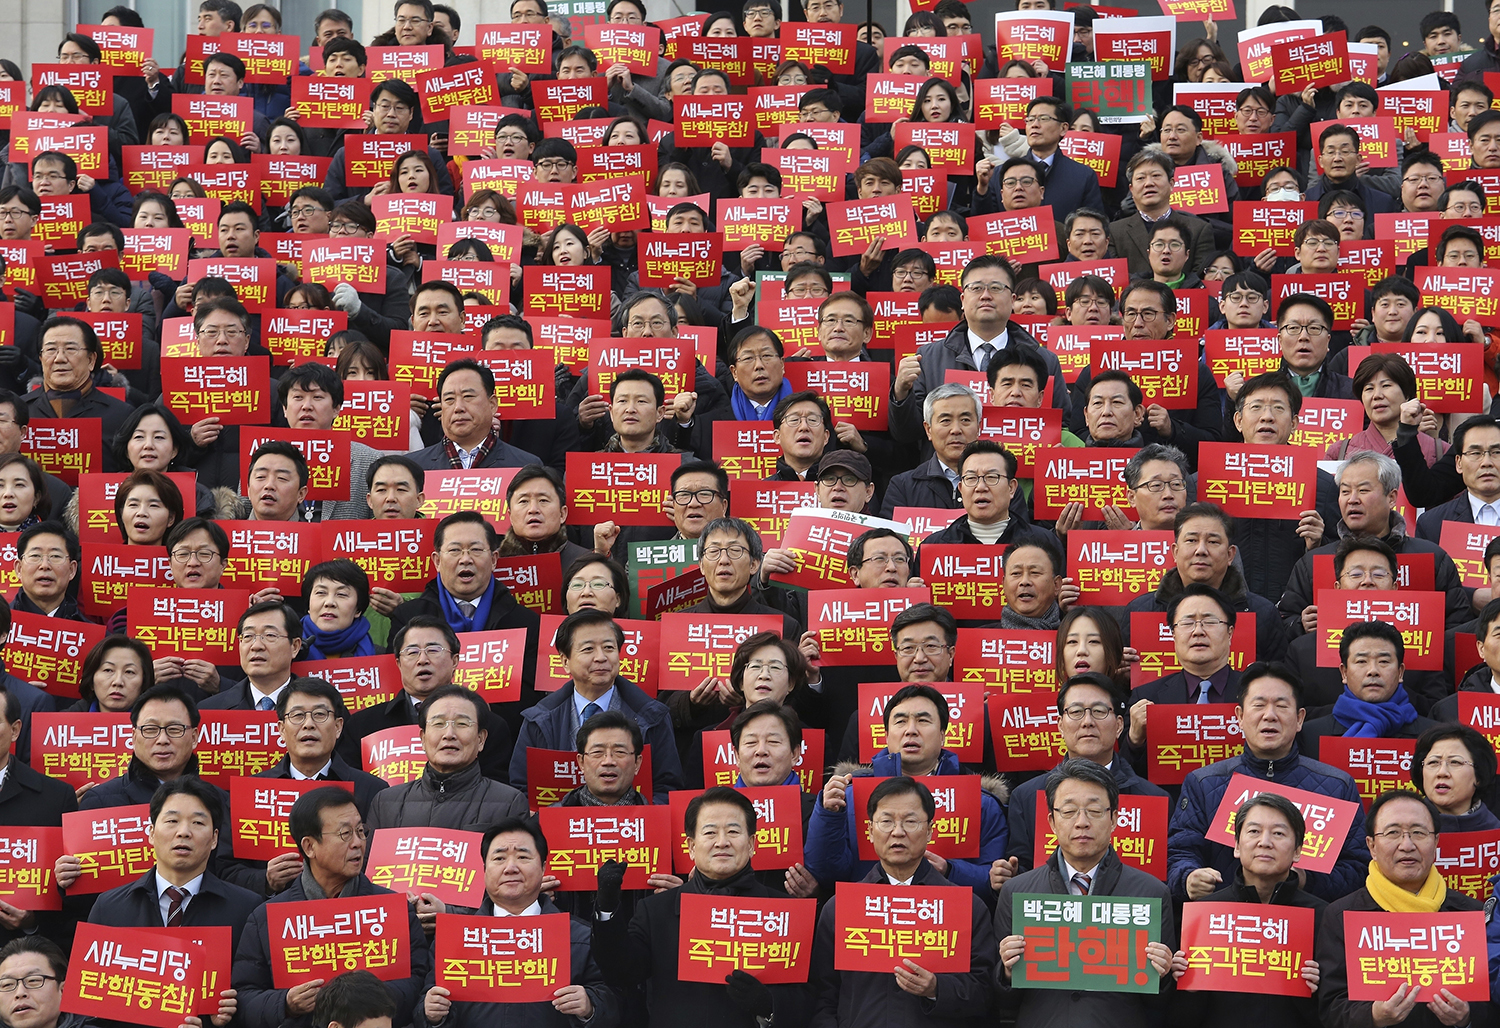 """FILE - In this Wednesday, Dec. 7, 2016, file photo, lawmakers and members of opposition parties hold cards during a rally demanding the impeachment of South Korean President Park Geun-hye at the National Assembly in Seoul, South Korea. South Korean lawmakers on Friday impeached Park, a stunning and swift fall for the country's first female leader amid protests that drew millions into the streets in united fury. The sign read """"President Park Geun-hye"""" and """"Impeachment !"""". (AP Photo/Ahn Young-joon)"""